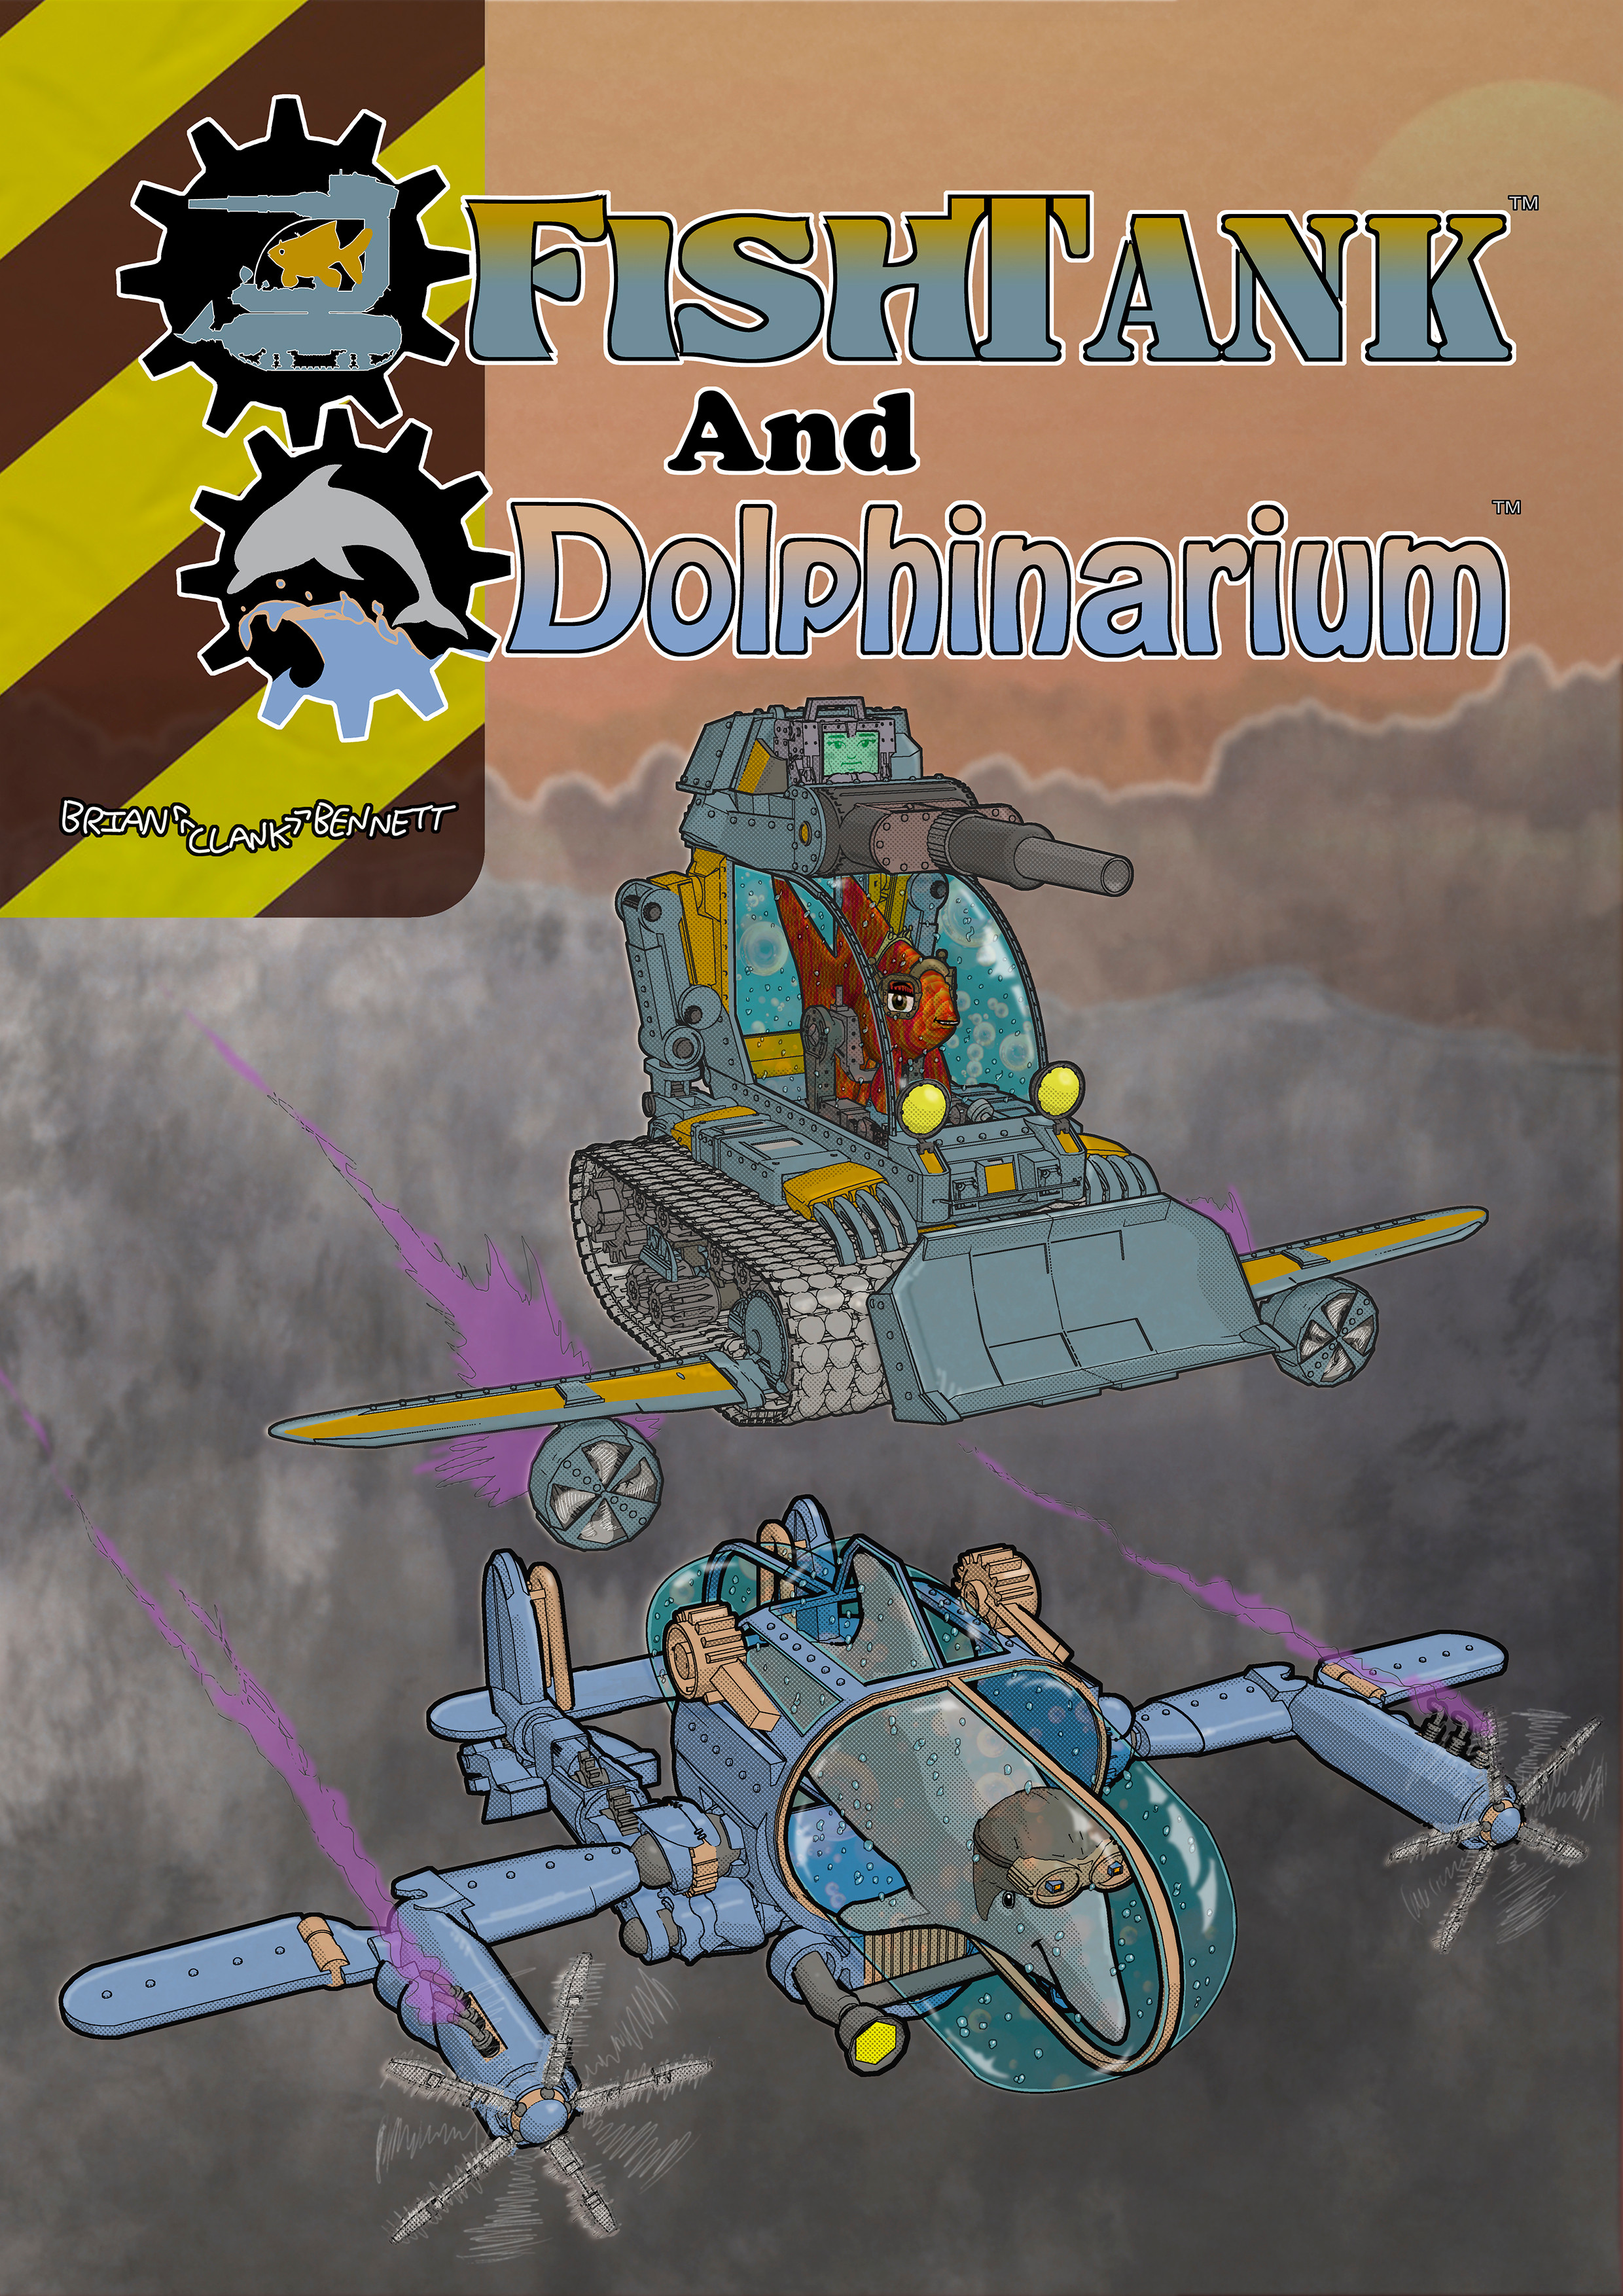 Front Cover from FishTank & Dolphinarium comic book.